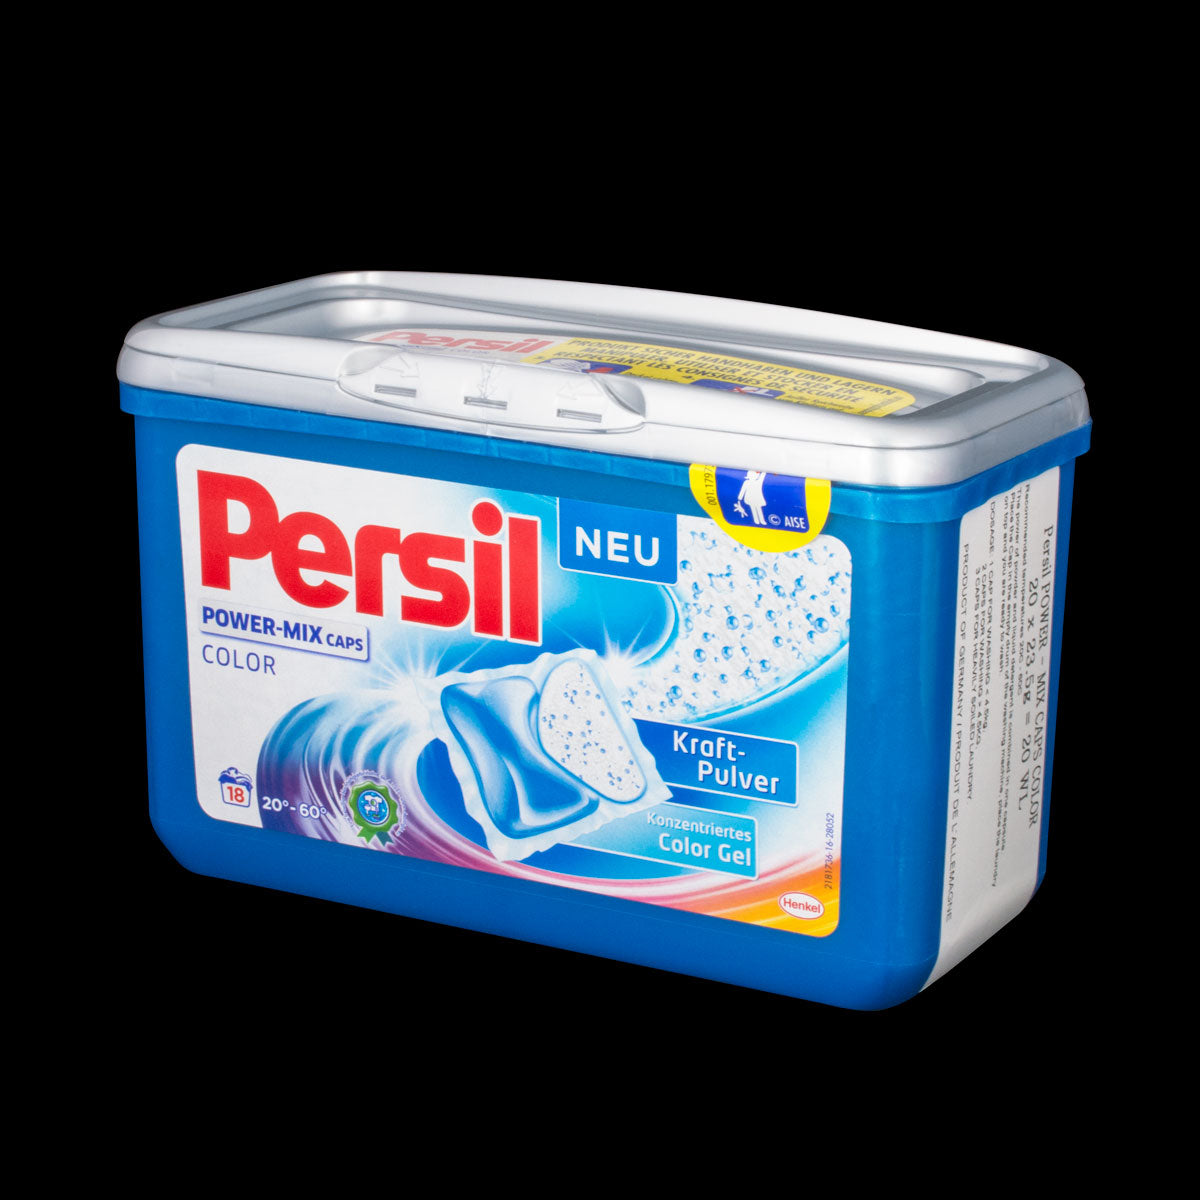 SJ935 Persil Power Mix Color 18WL Capsules Henkel Laundry Detergent 18 Wash Load Size *Product of Germany